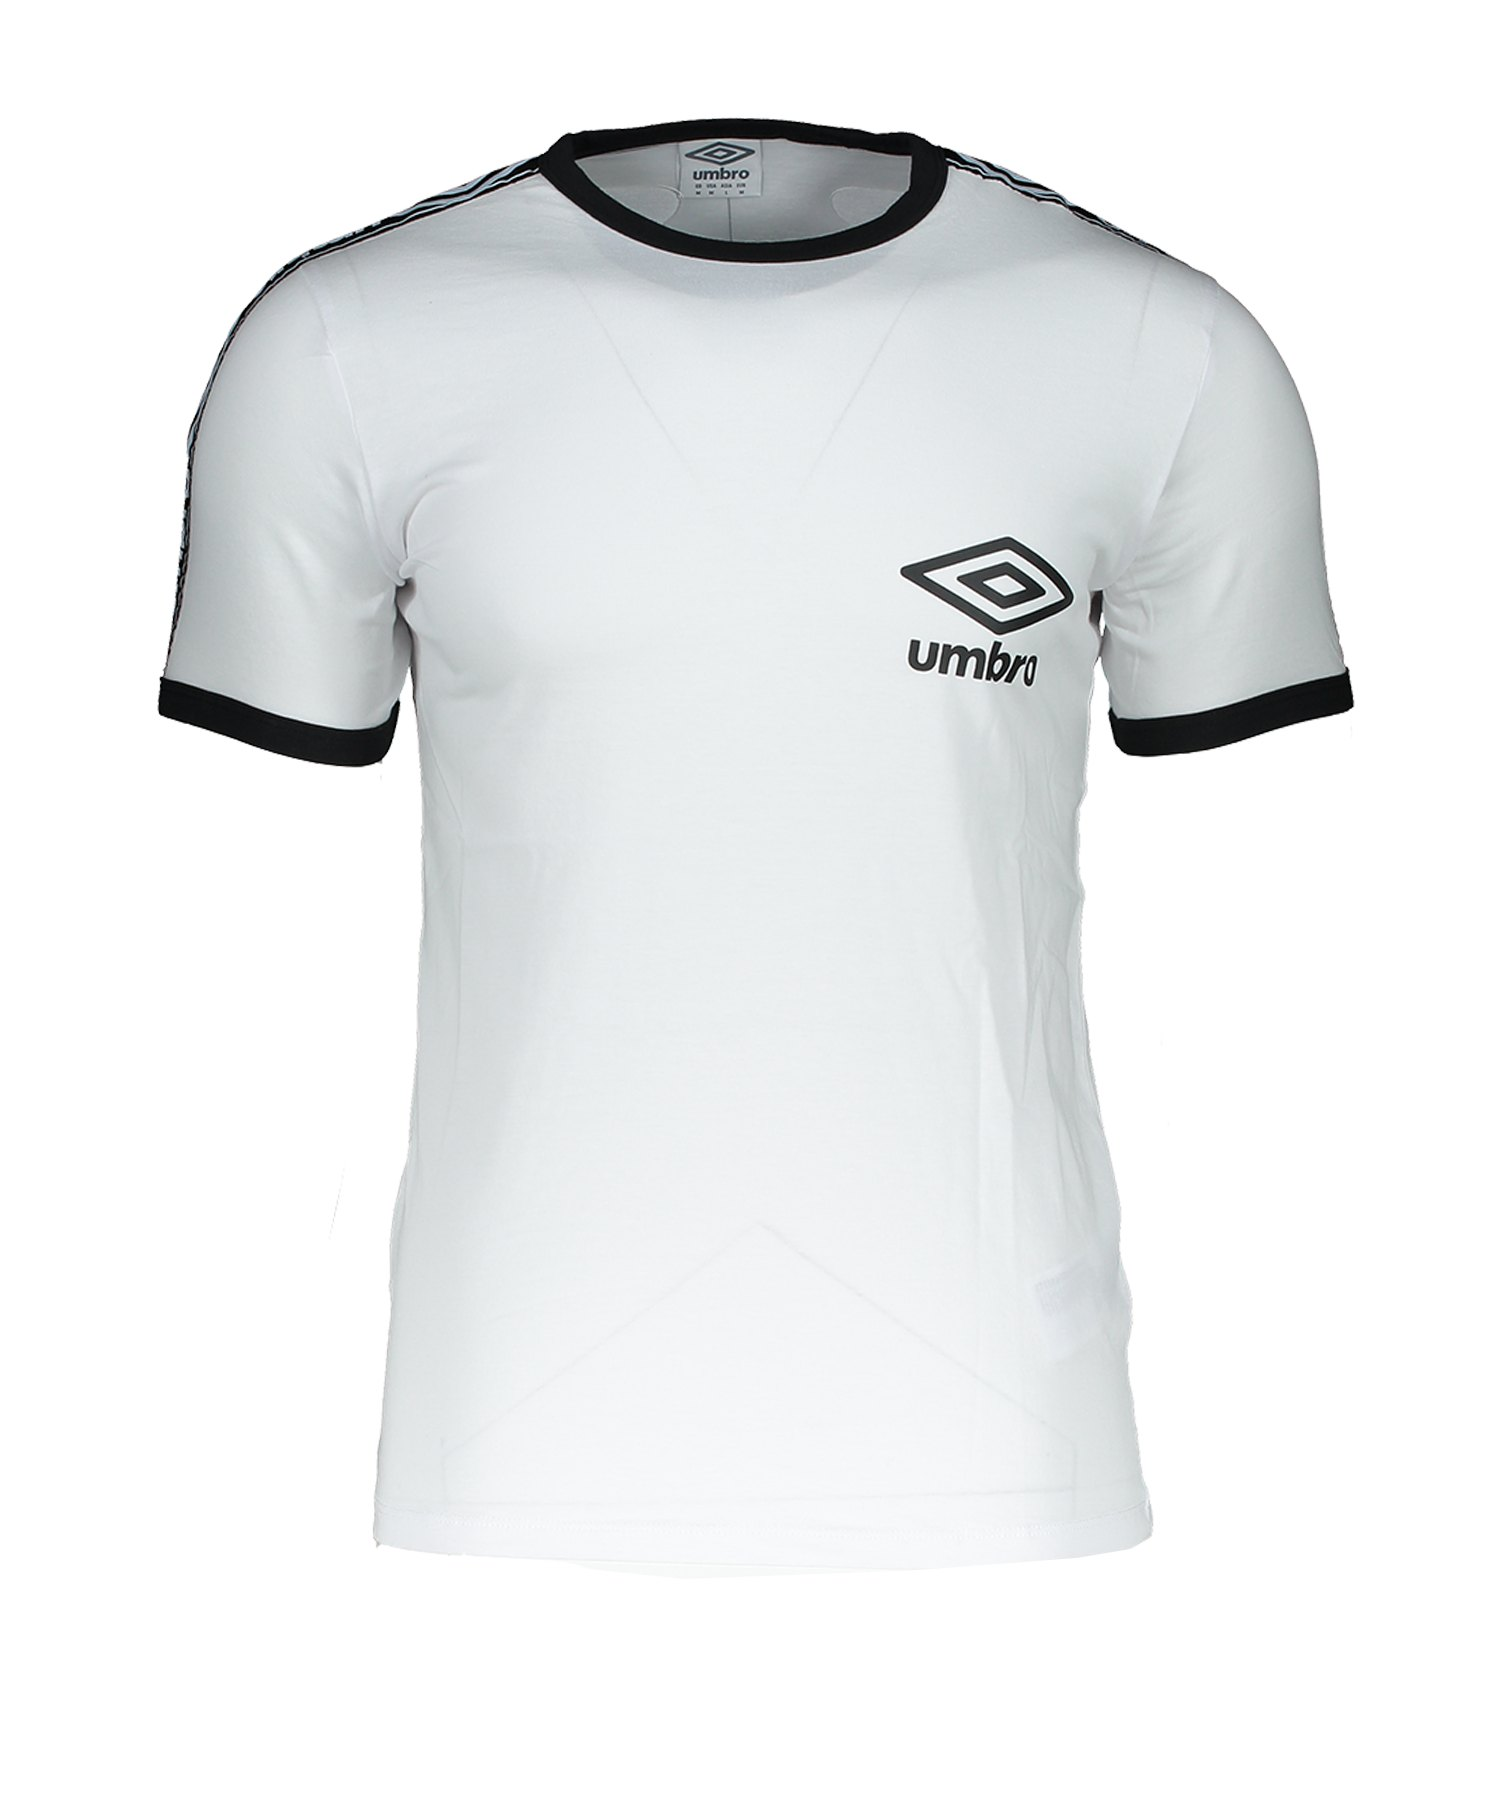 Umbro Taped Ringer T-Shirt Weiss F13V - Weiss